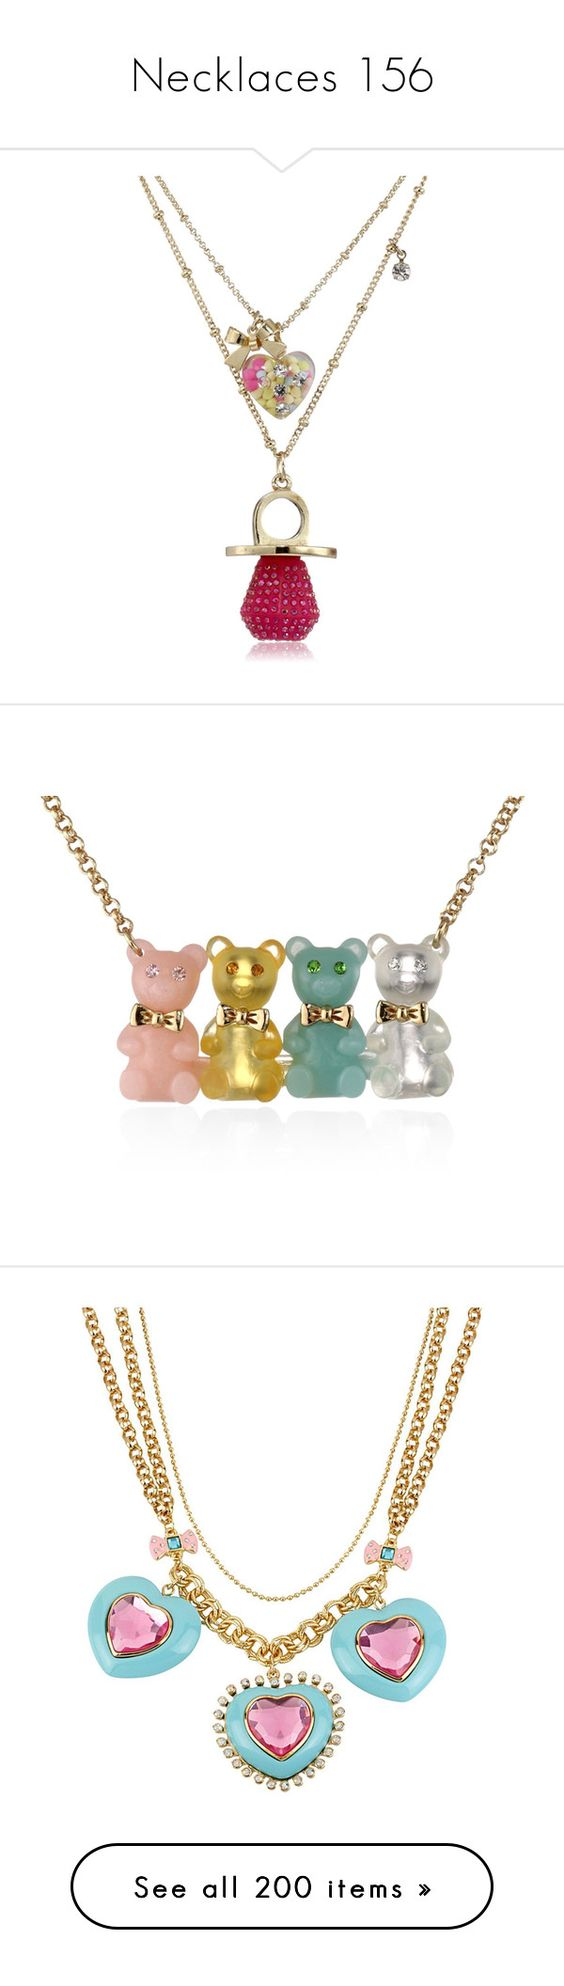 """""""Necklaces 156"""" by singlemom ❤ liked on Polyvore featuring jewelry, necklaces, betsey johnson necklace, pendant necklace, betsey johnson jewelry, betsey johnson, pendant jewelry, bear necklace, betsey johnson jewellery and bear jewelry"""